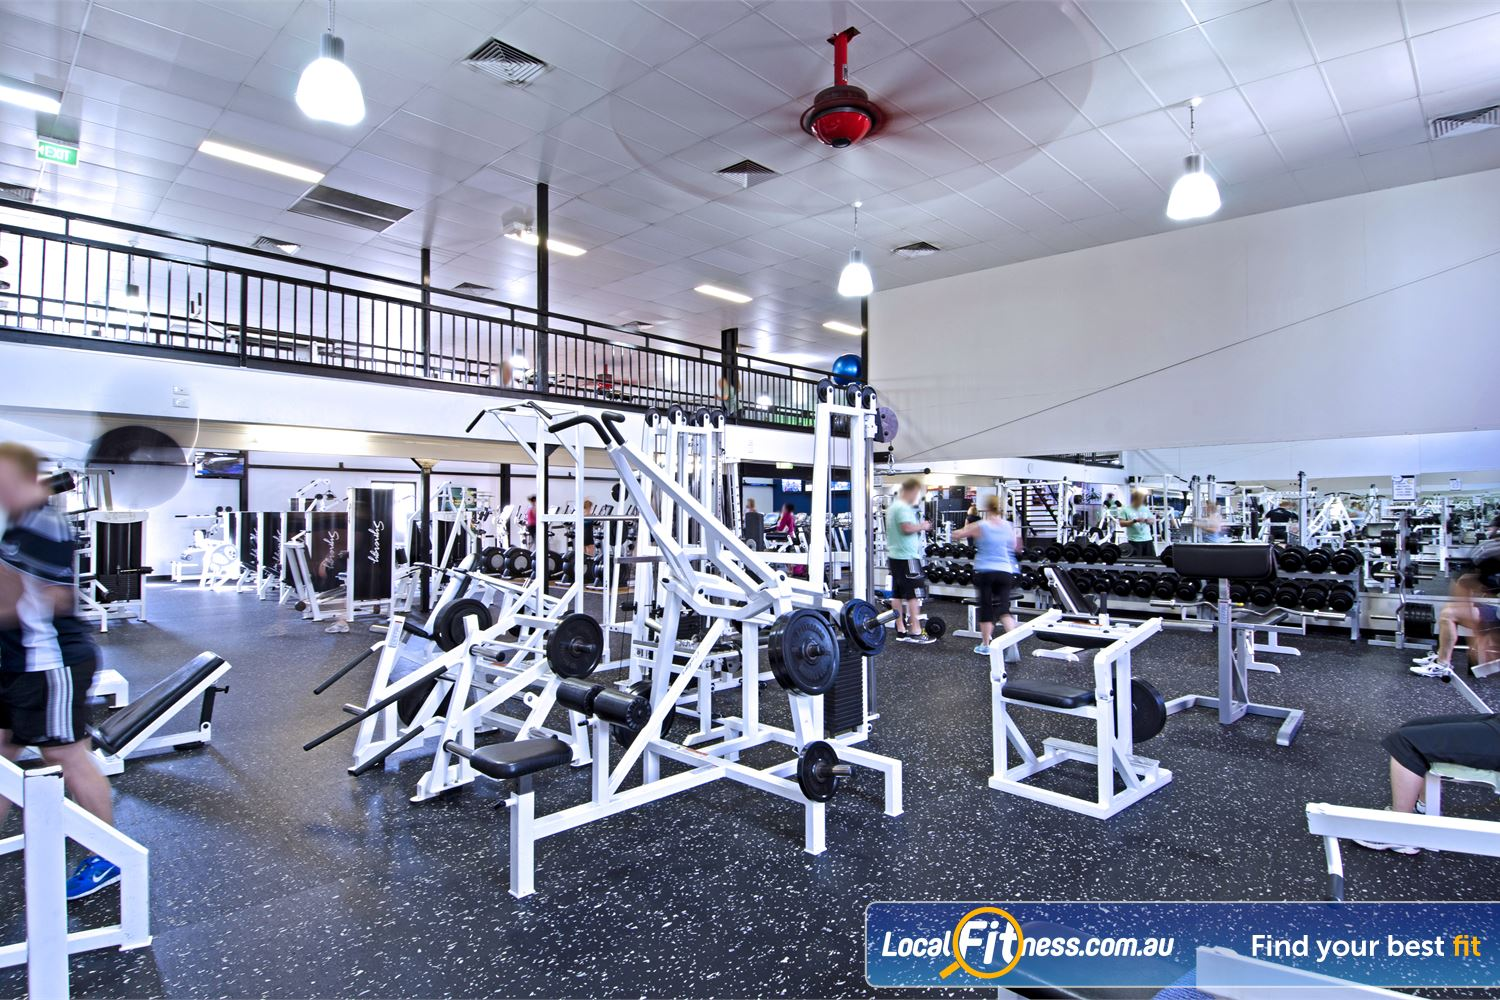 Goodlife Health Clubs Near Sherwood Our Graceville gym provides a spacious open plan training environment.